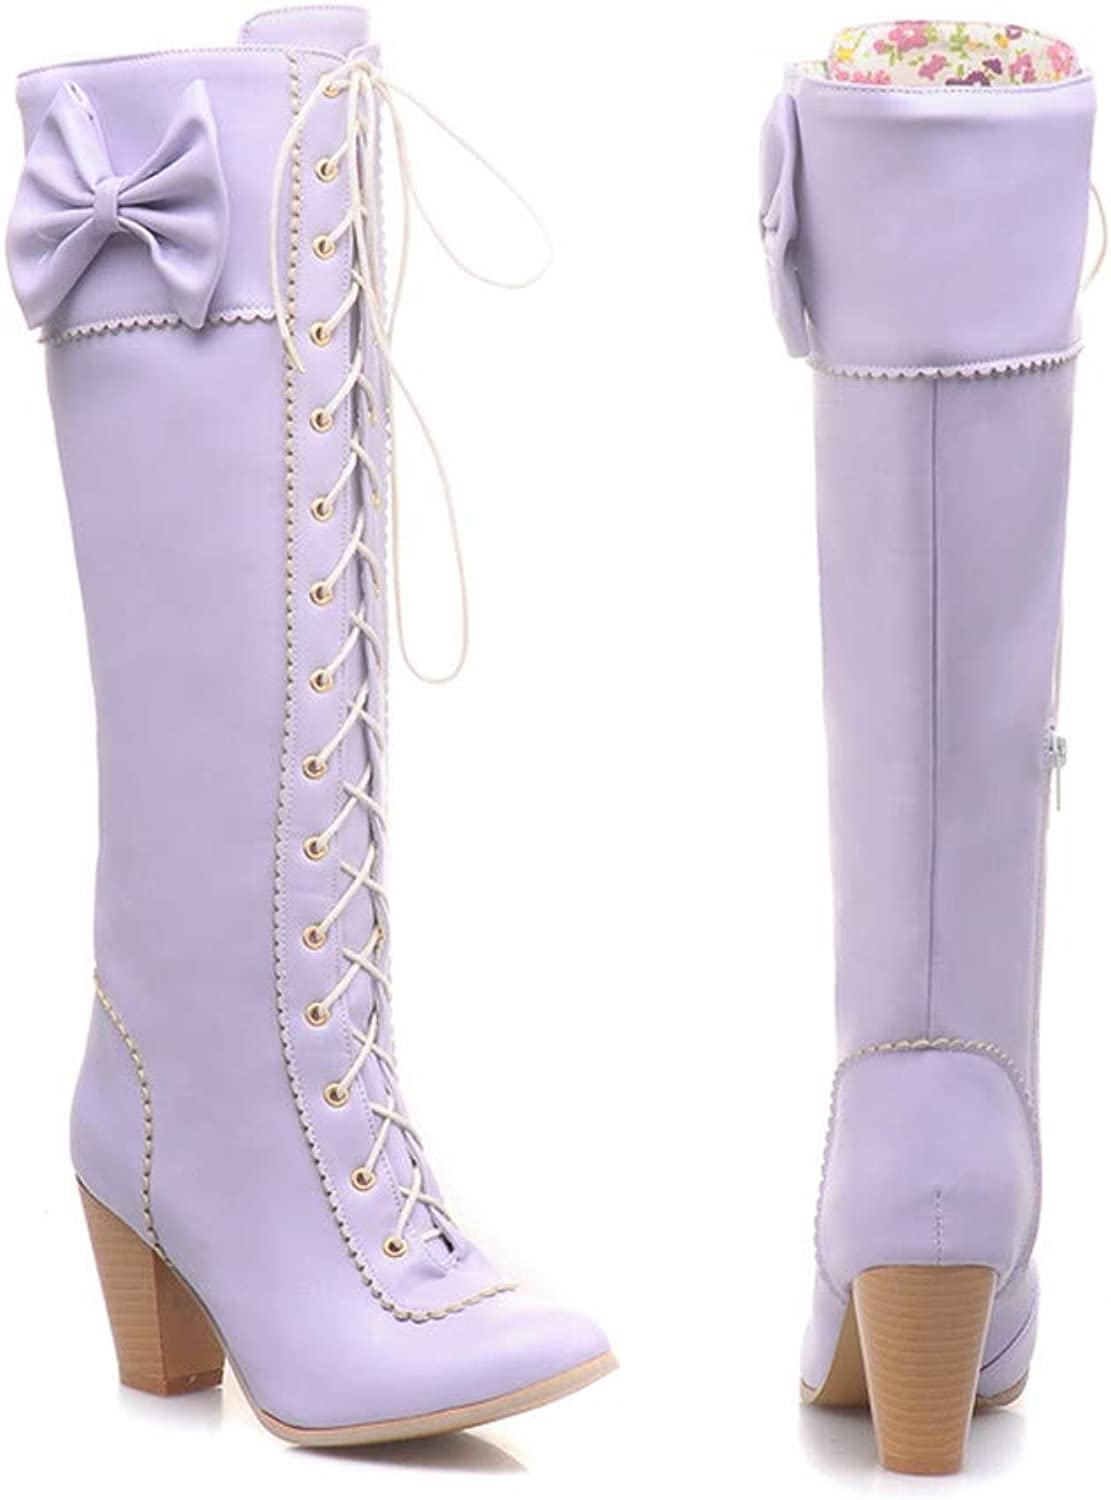 HILIB Women's Lace-Up Strappy Knee High Bowtie Elegants Boots Combat Stacked Heel Boot